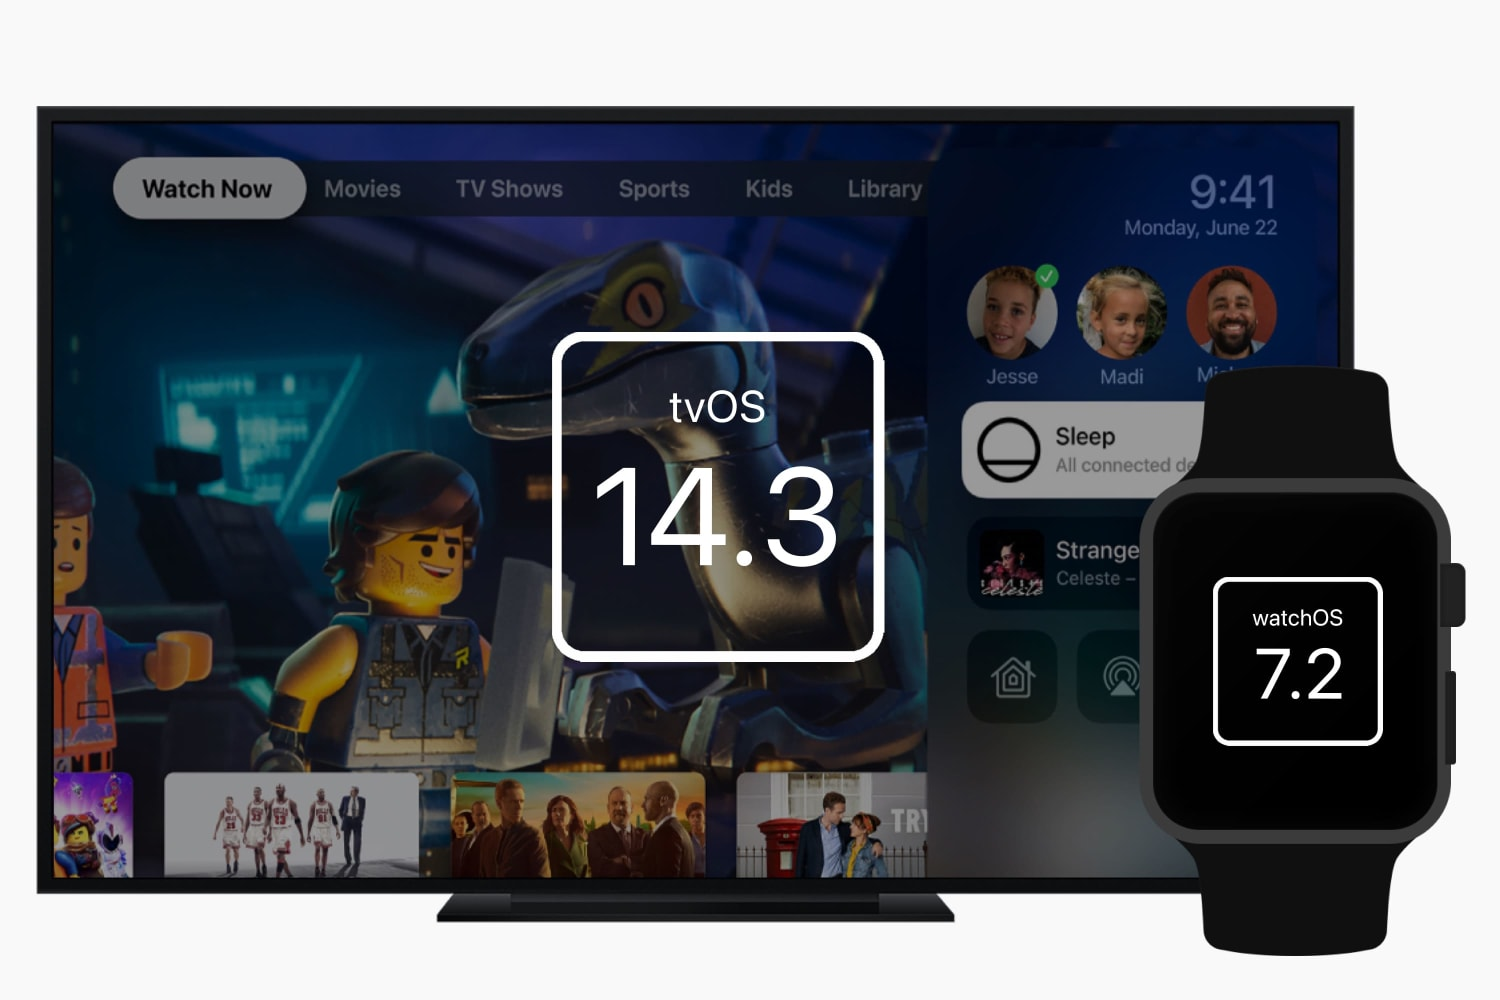 watchos-7-2-and-tvos-14-3-second-betas-released-to-developers-20201118-1